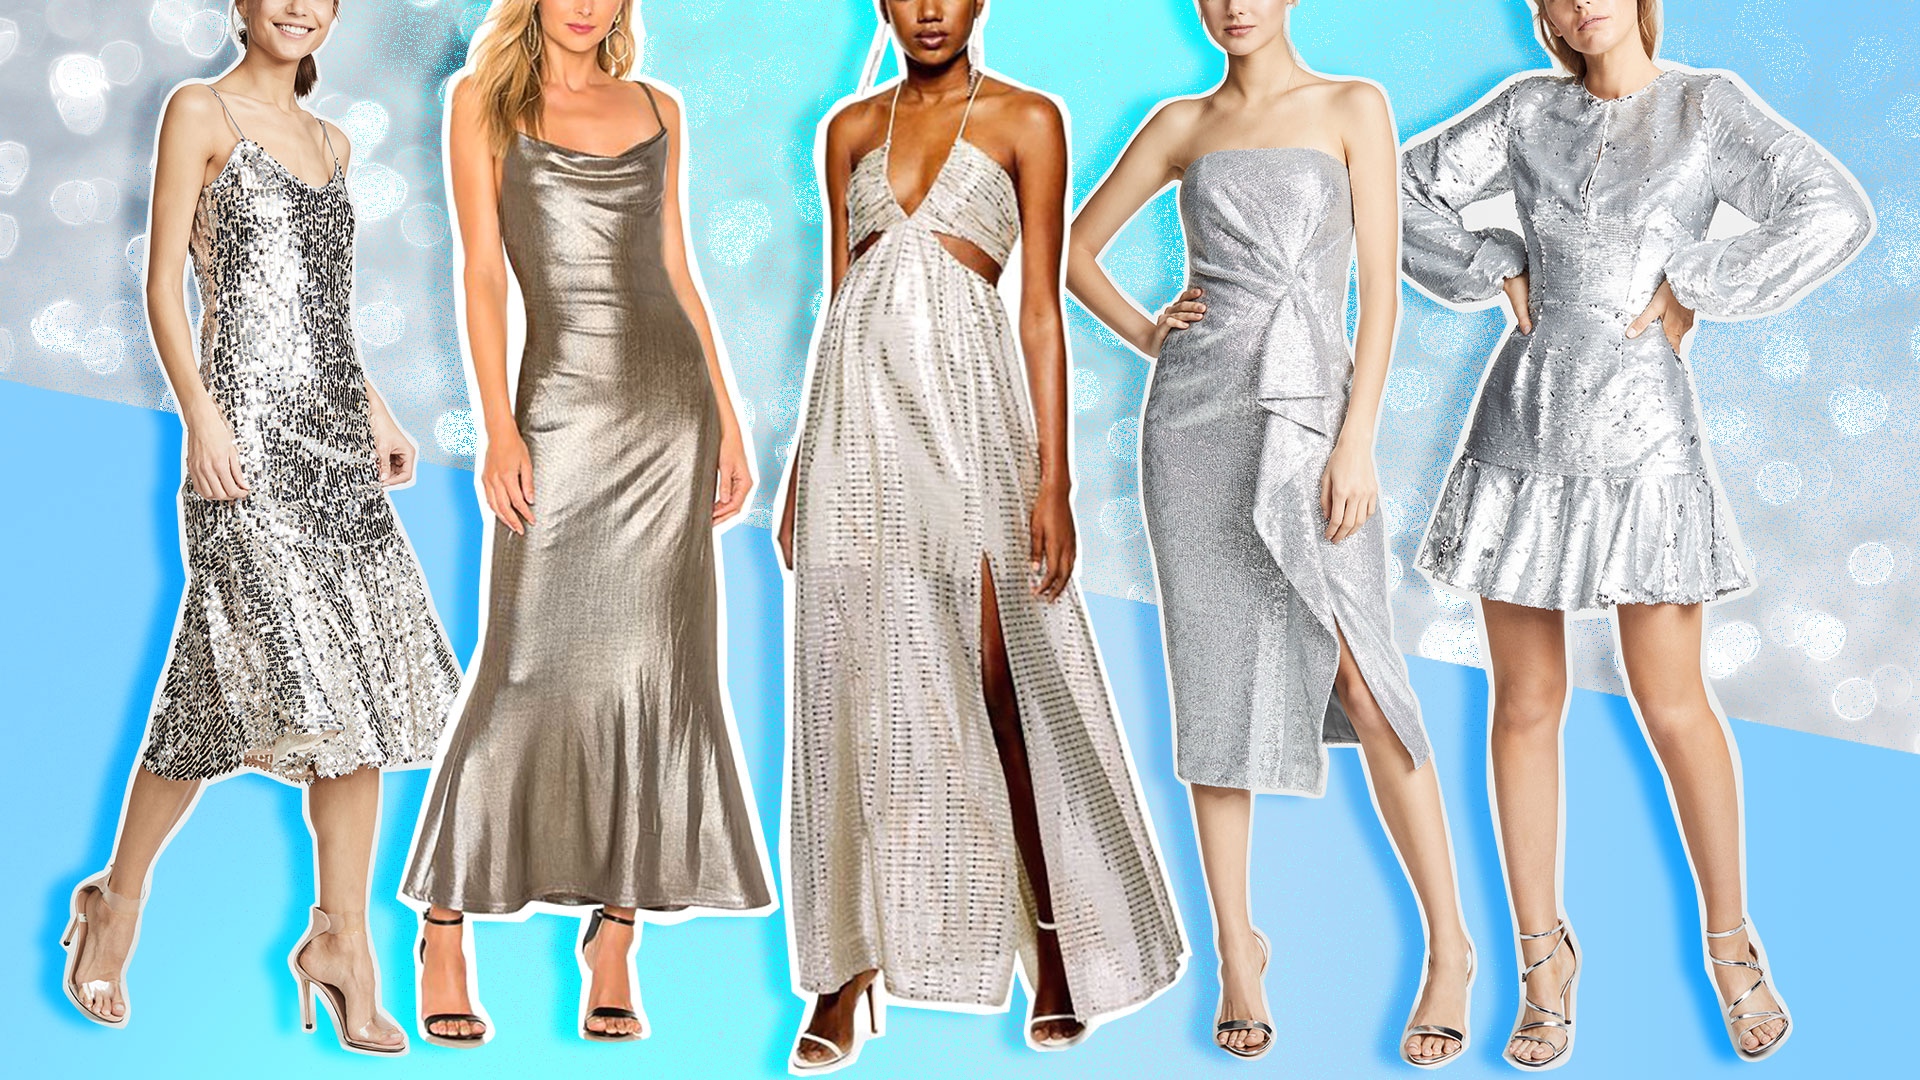 Silver Bridesmaid Dresses That Are Equal Parts Shimmery and Sleek